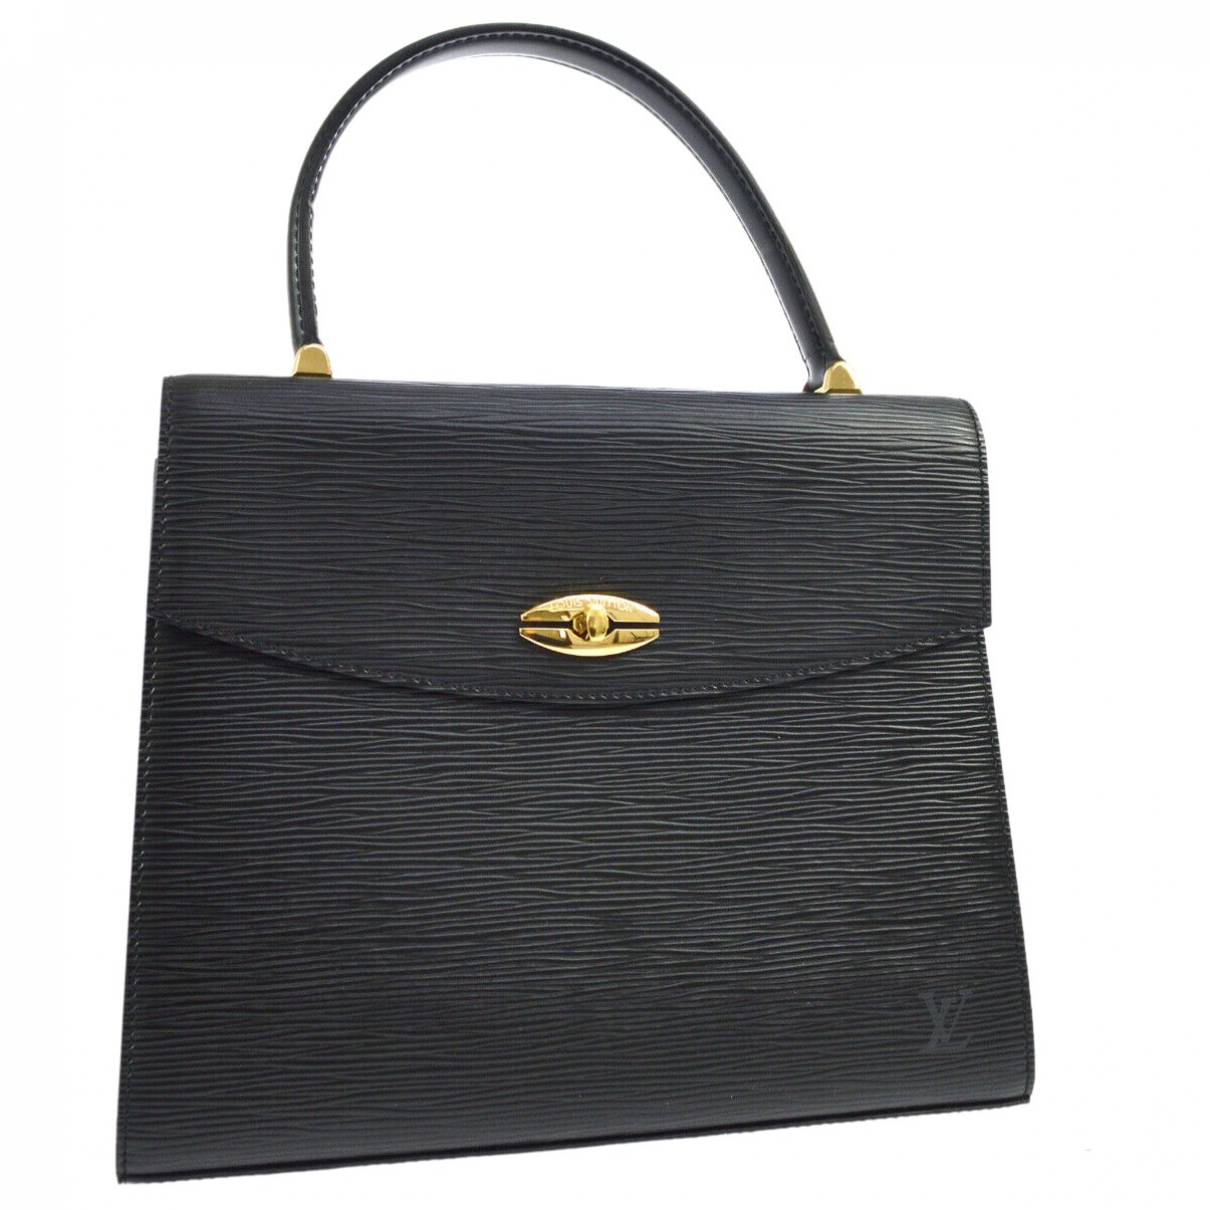 Louis Vuitton Malesherbes Black Leather handbag for Women \N